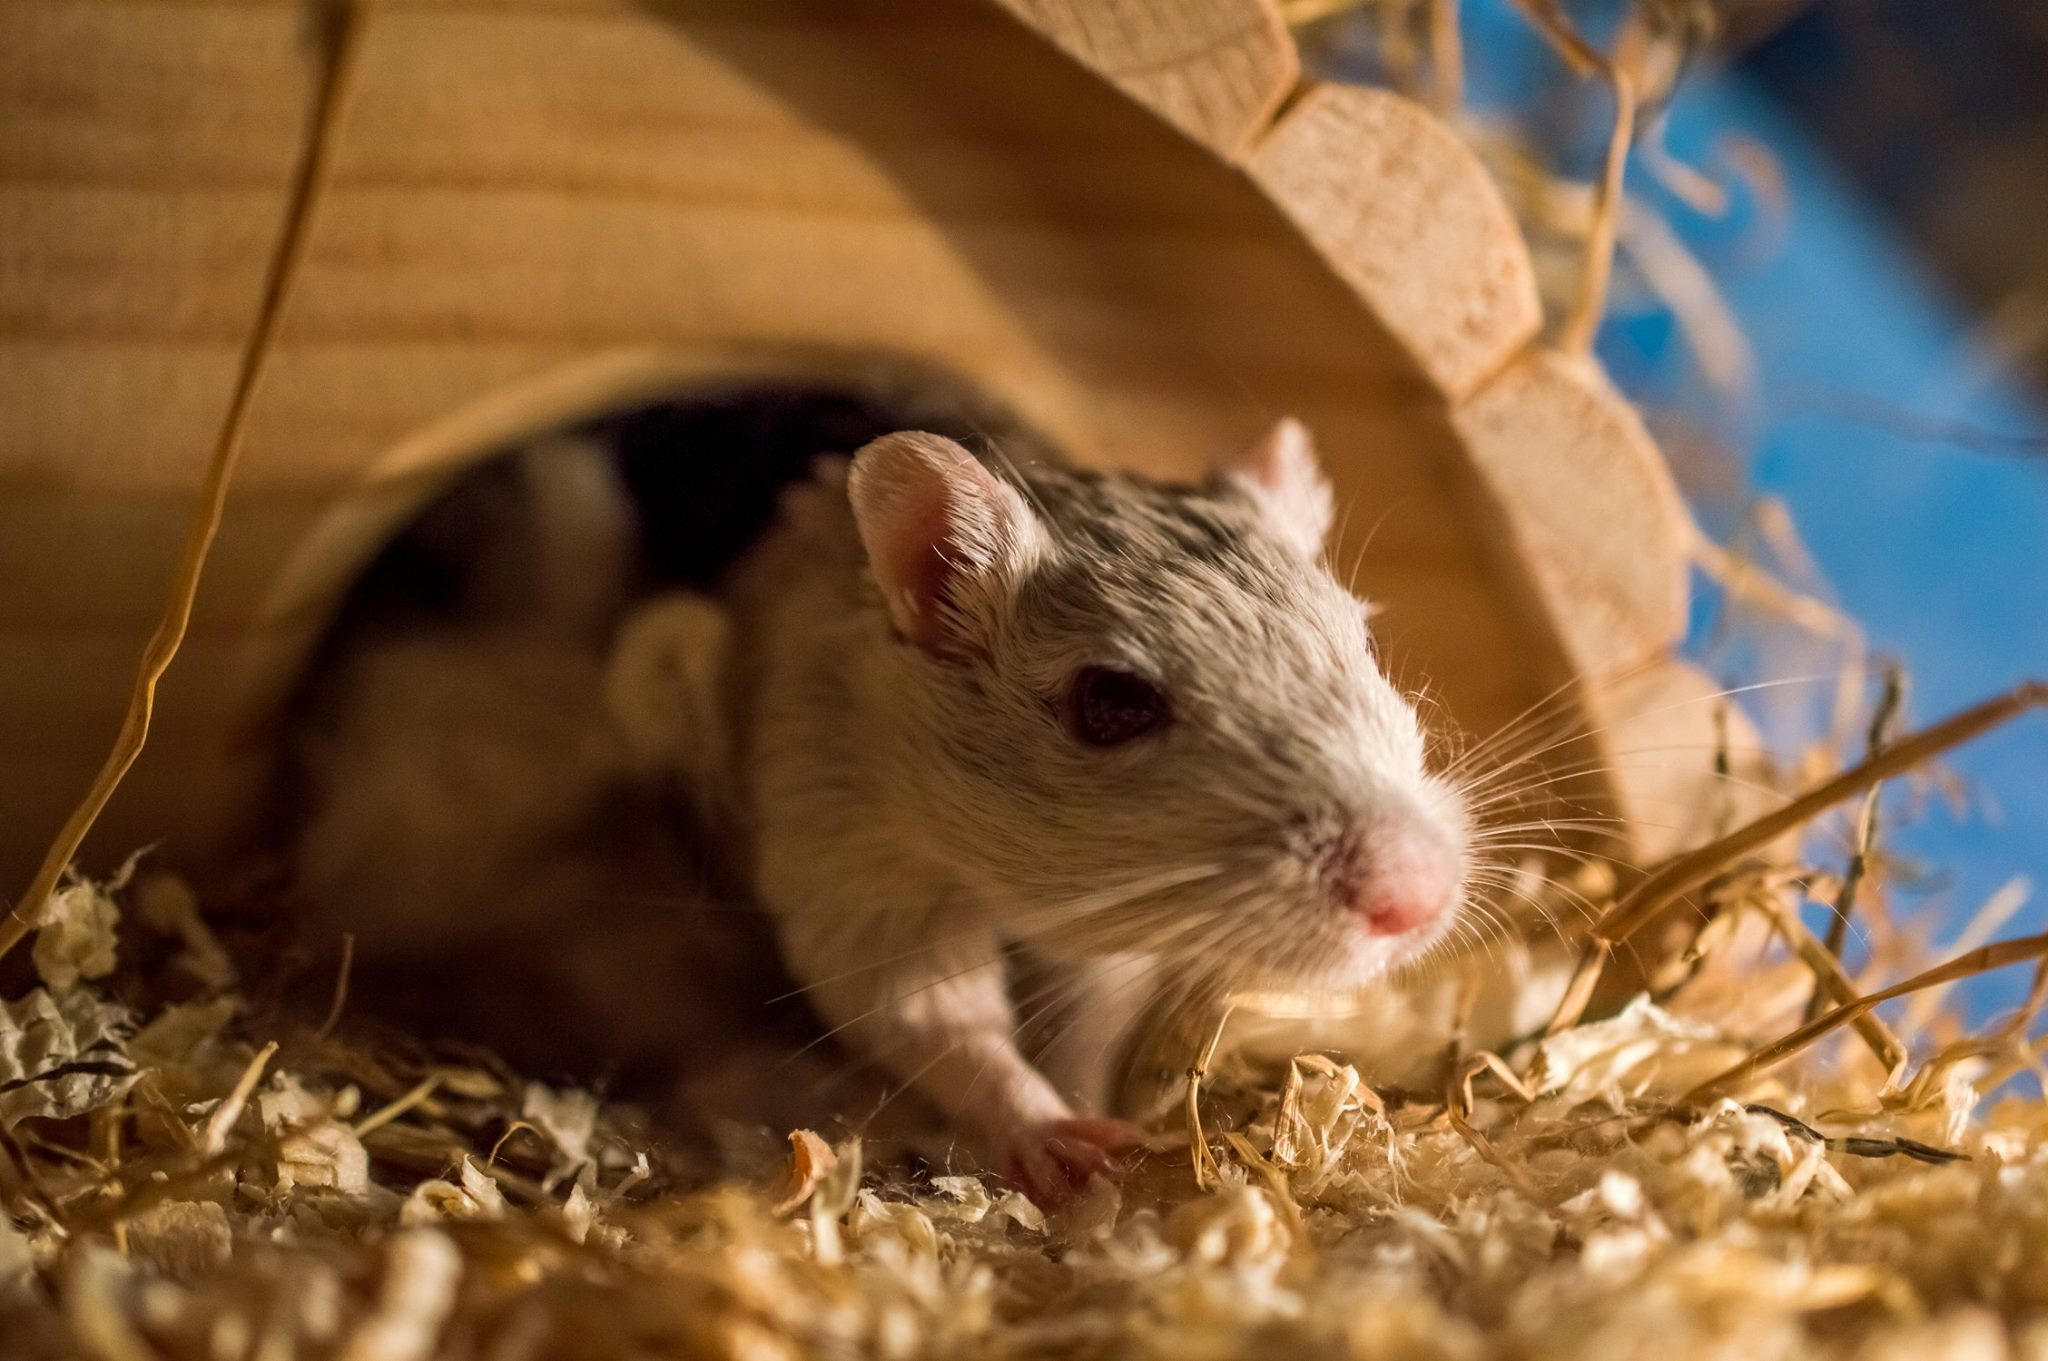 Home Visits - Barnsley - Pop in - Small Animal Care